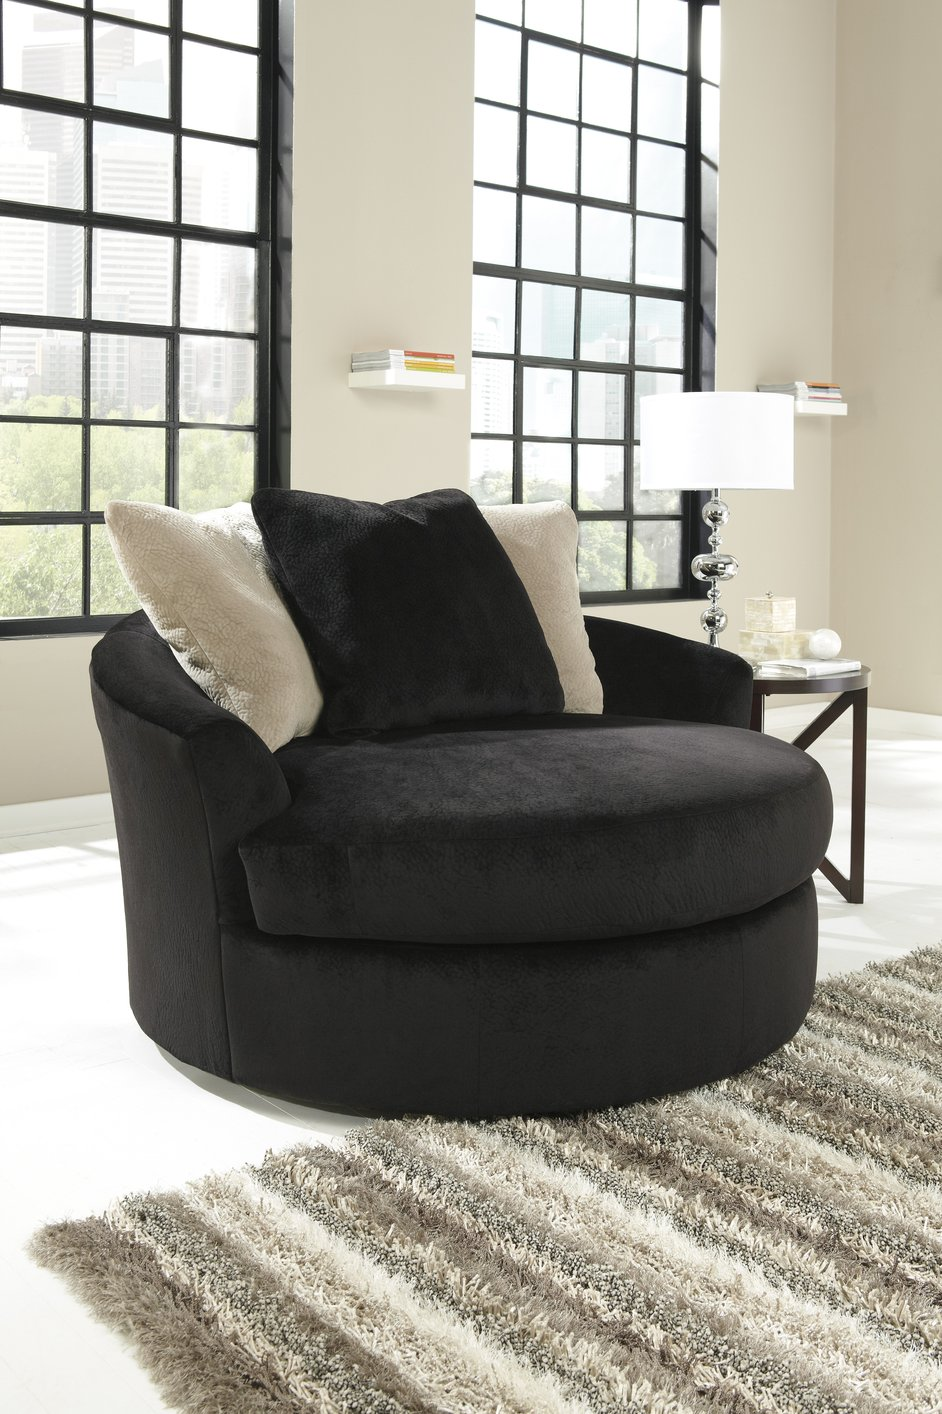 Add style and beauty to your living area with a black